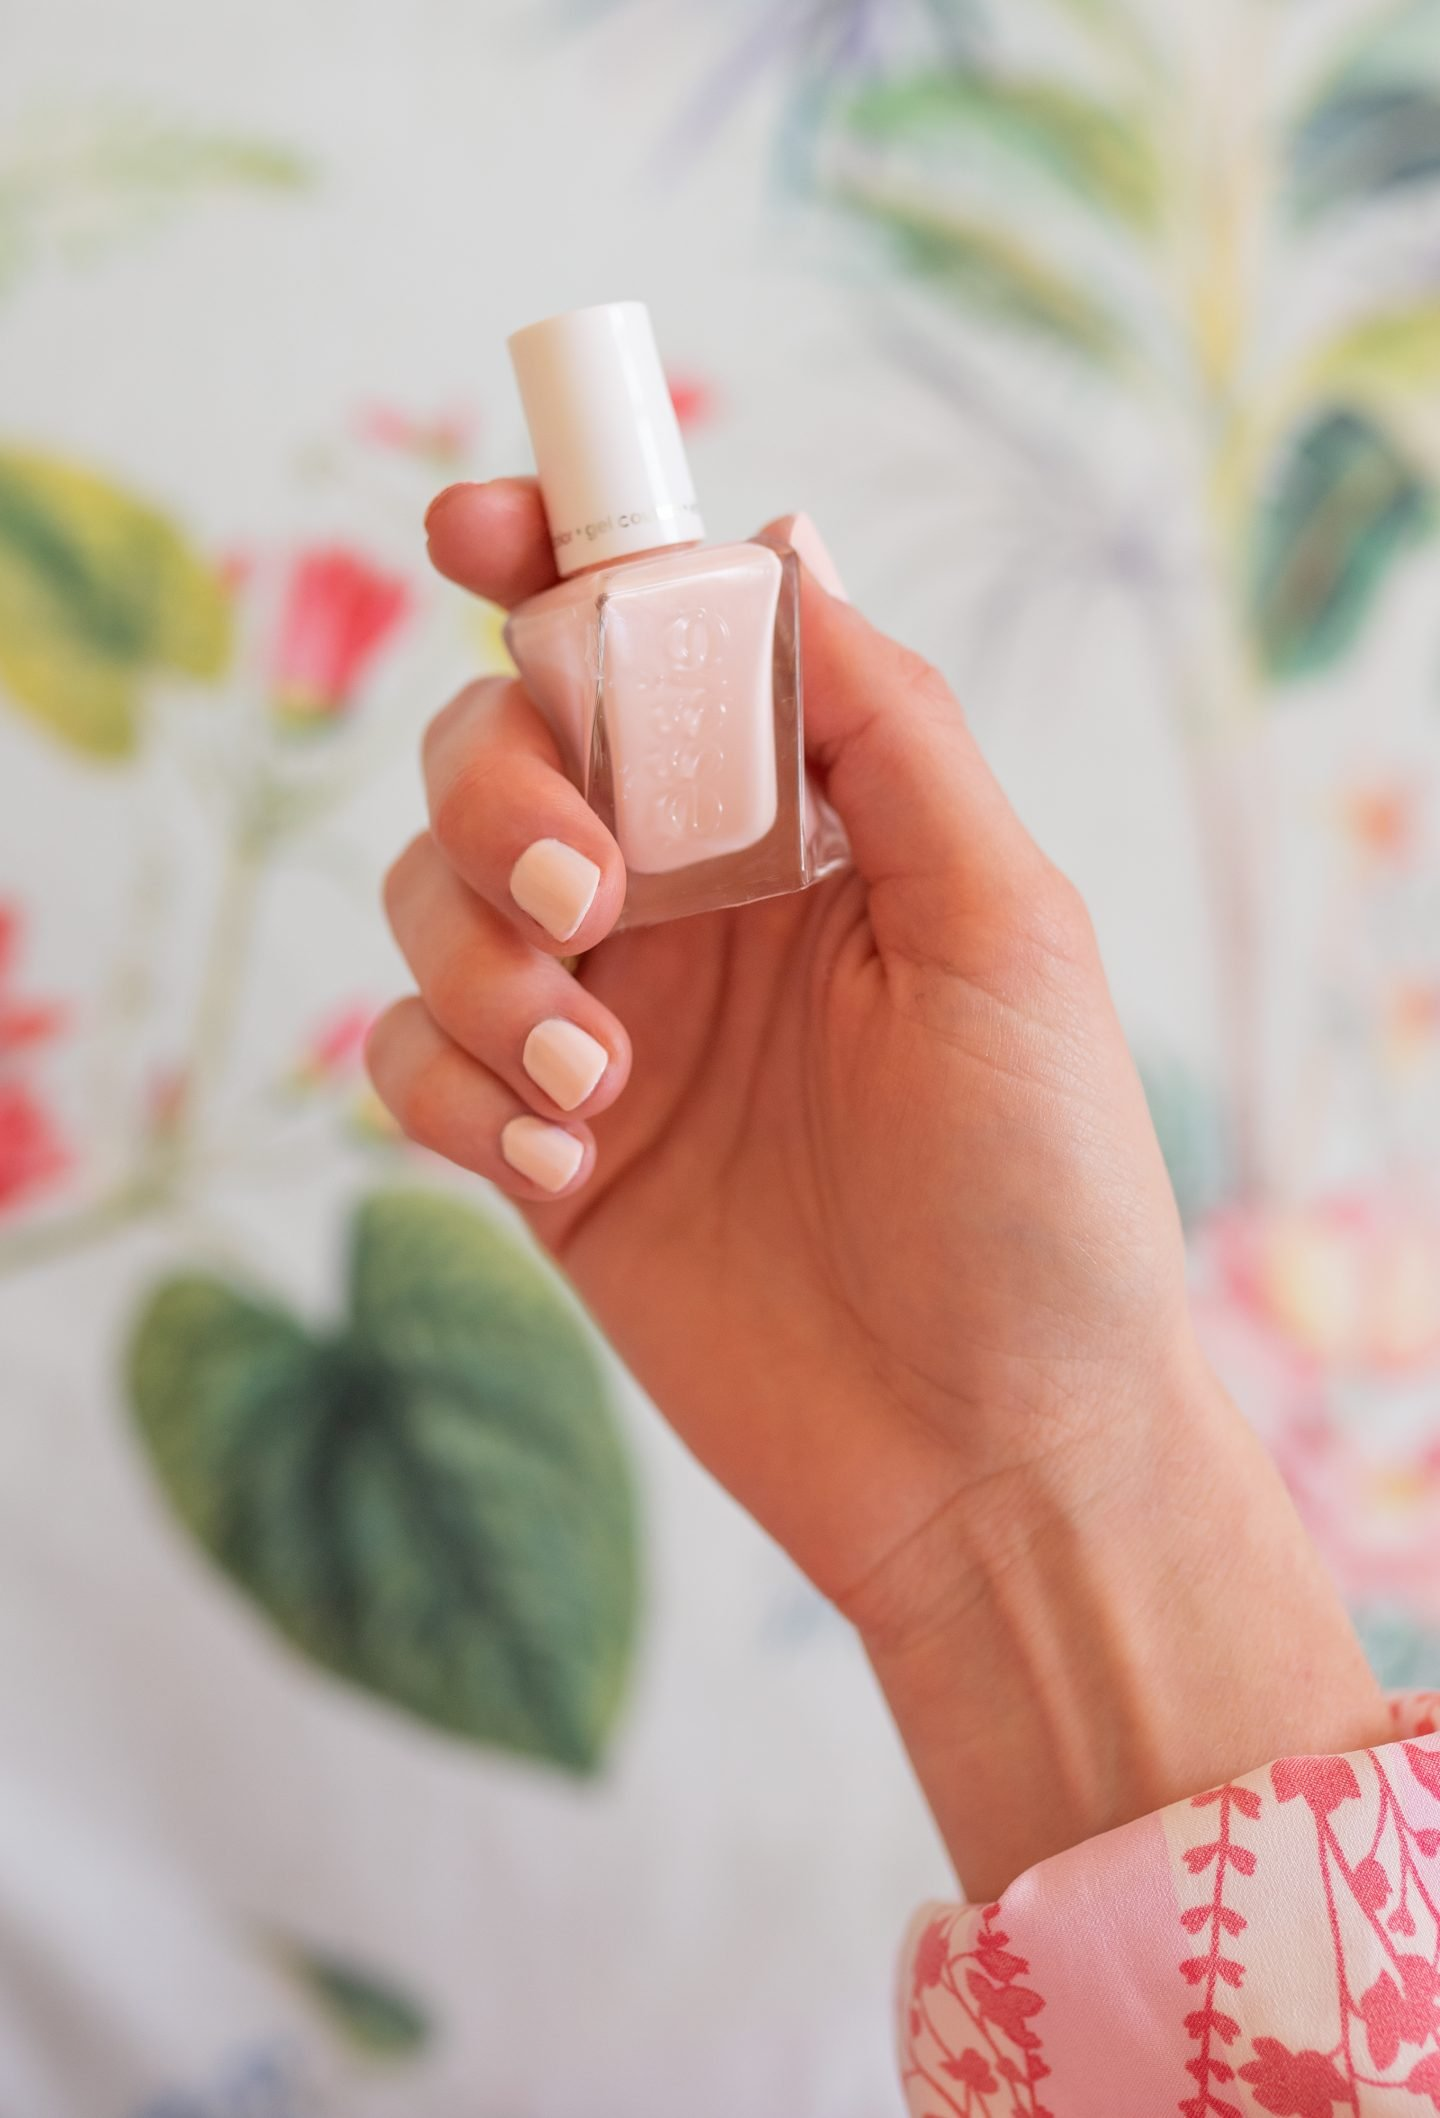 Ashley Brooke shows how to DIY a manicure at home on with Essie Gel Couture